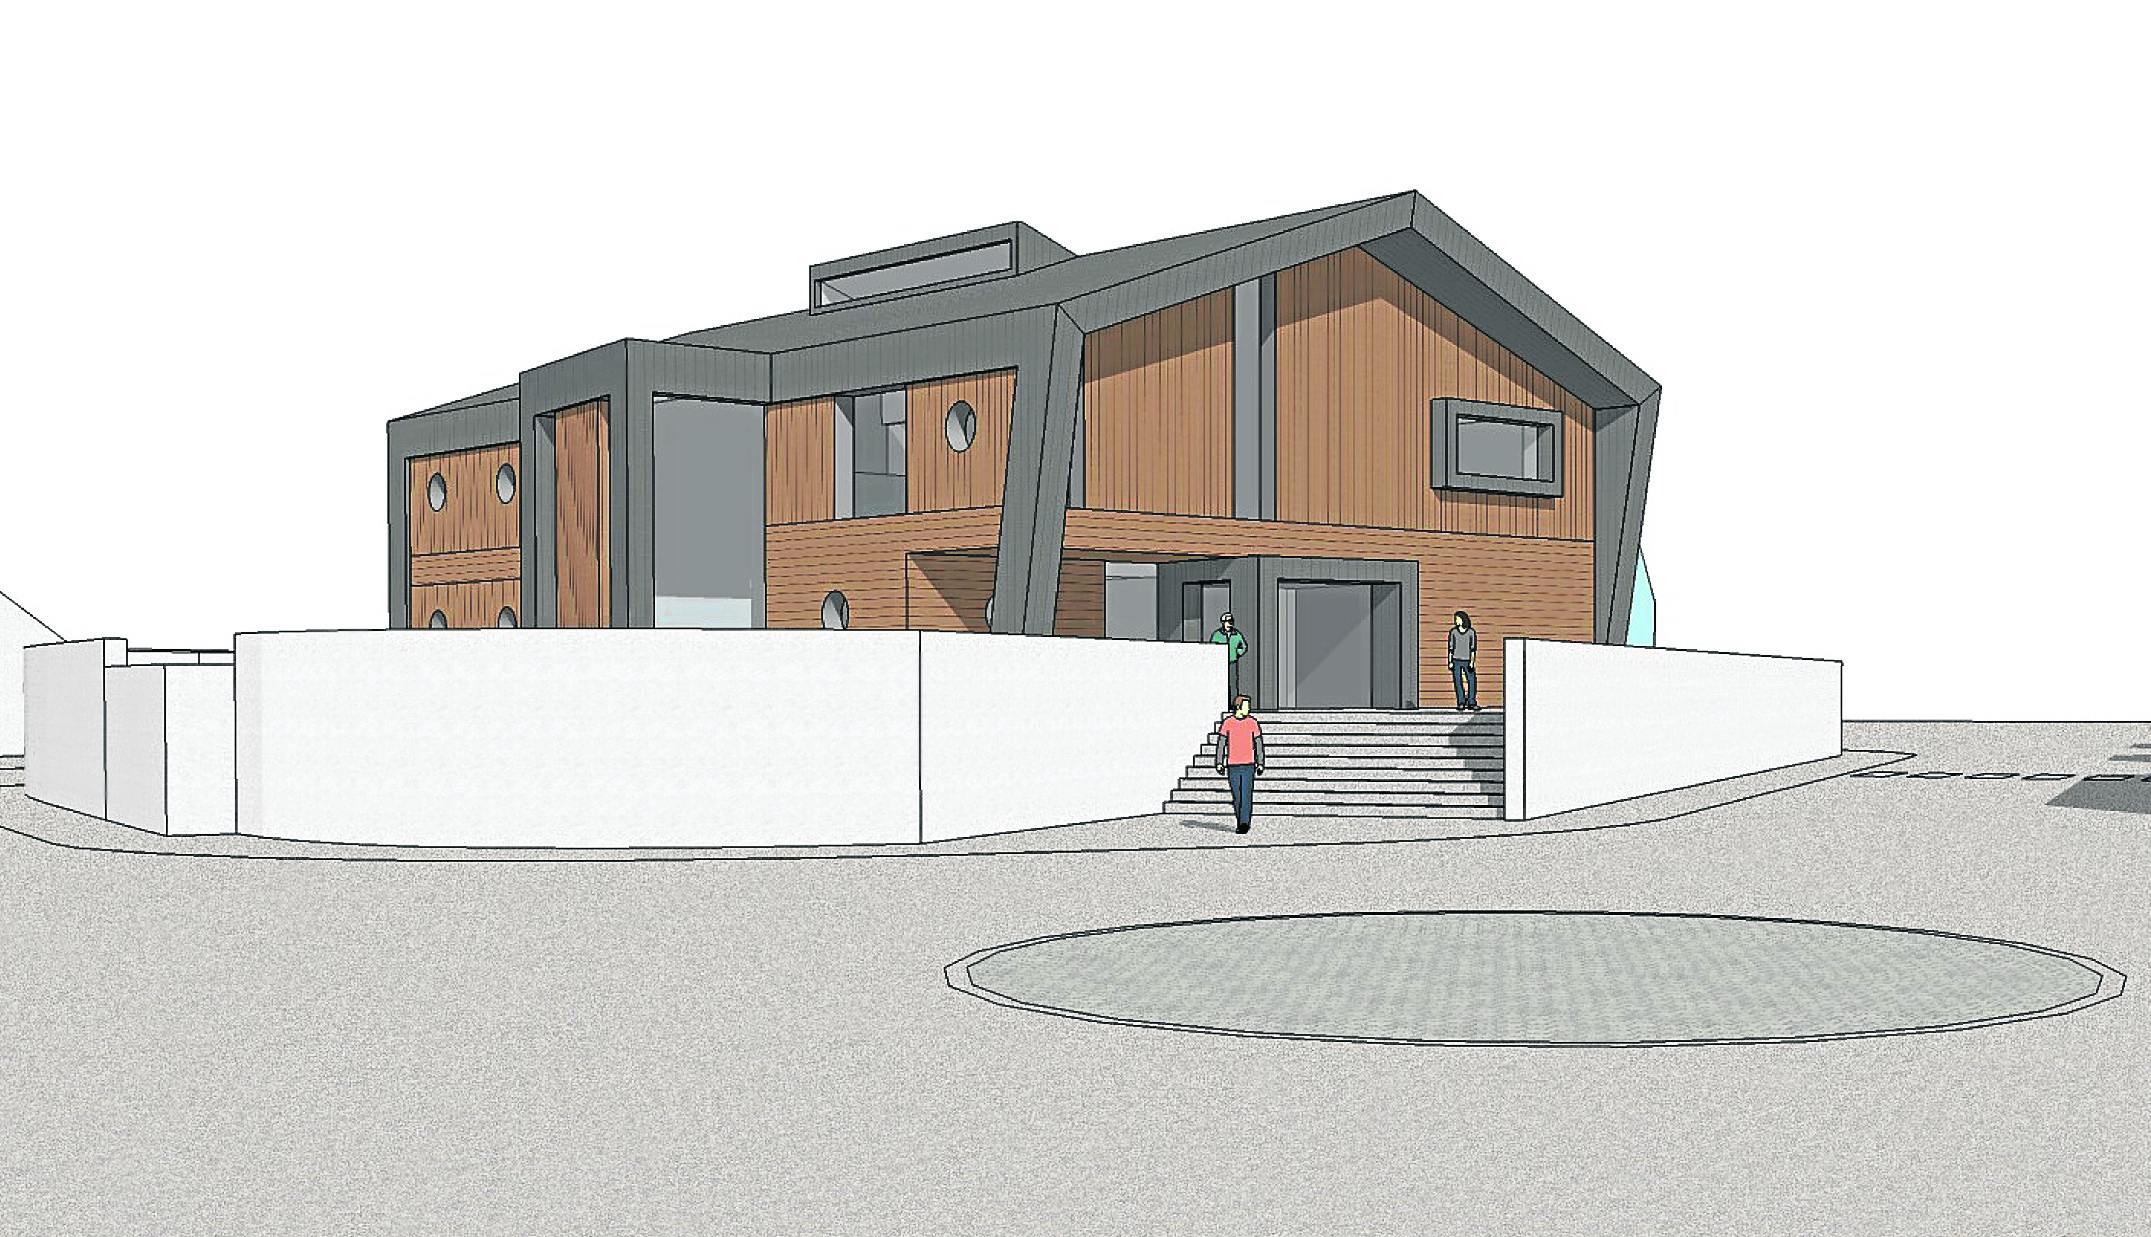 Artist impression of the UHI plans for a campus building in Mallaig